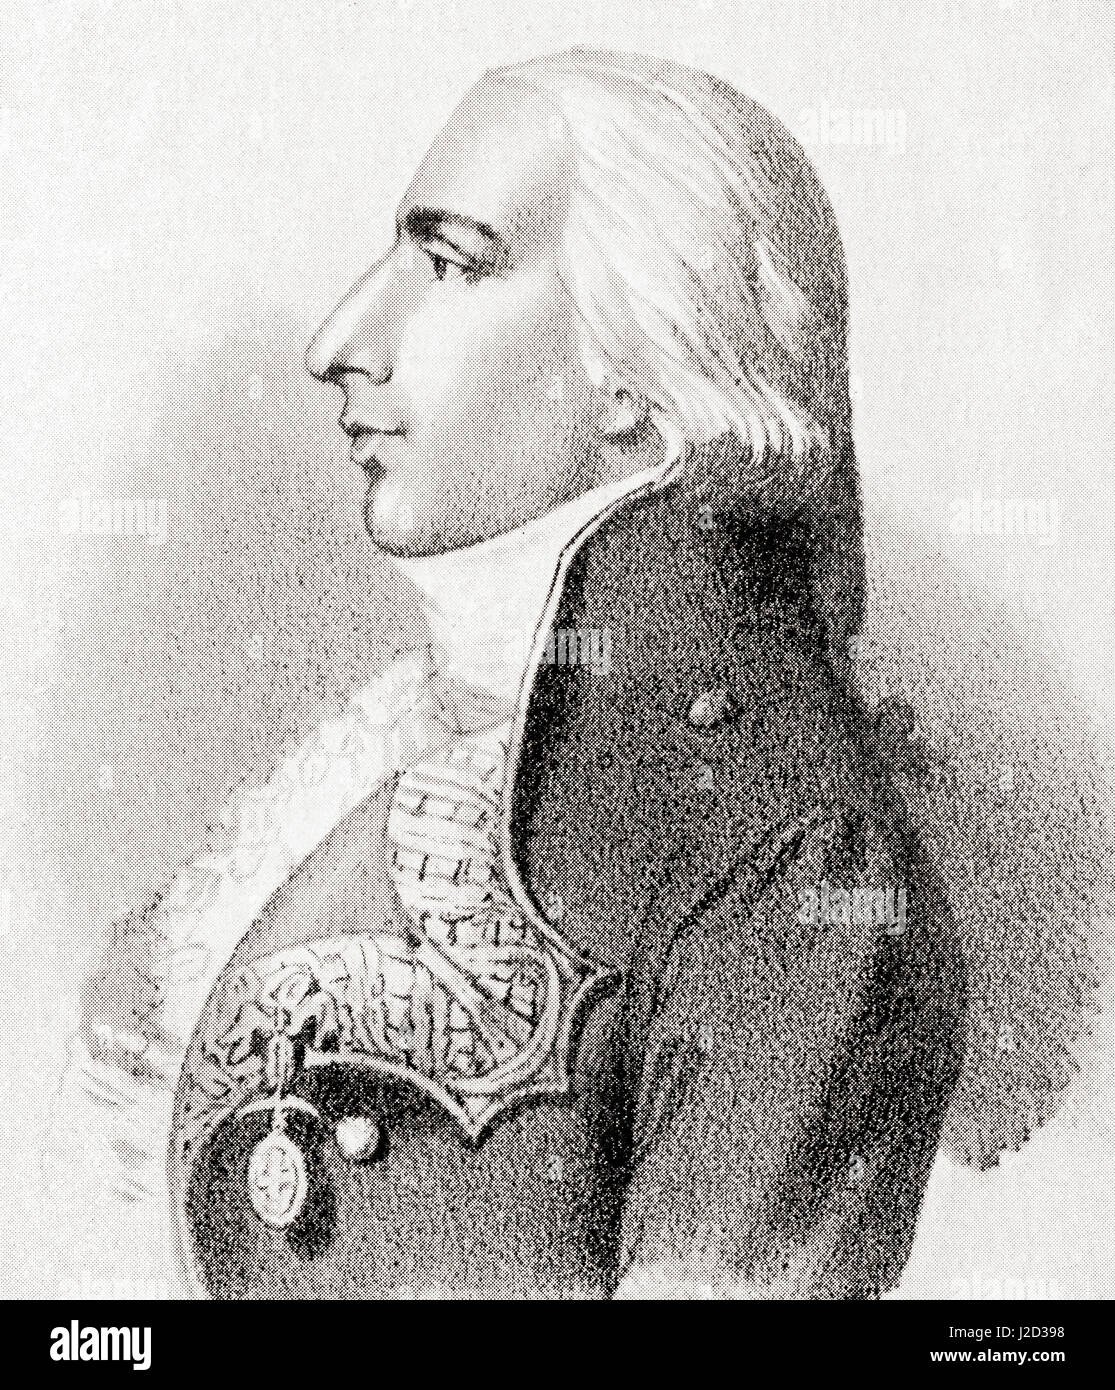 Don Federico Carlos Gravina y Nápoli, 1756 - 1806. Spanish Admiral during the American Revolution and Napoleonic - Stock Image